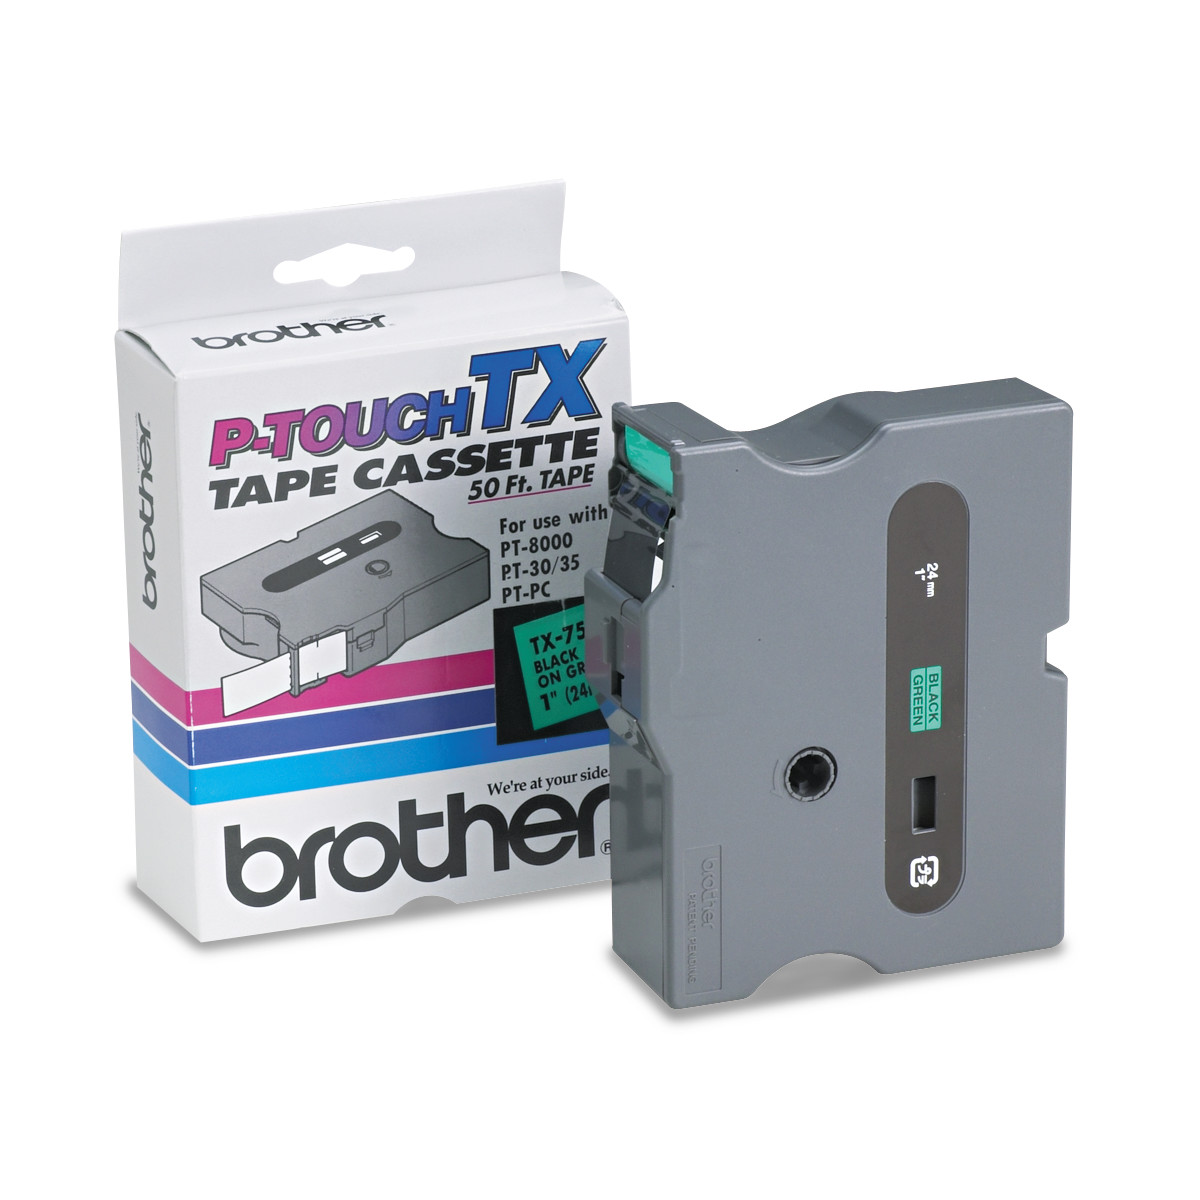 """Brother P-Touch TX Tape Cartridge for PT-8000, PT-PC, PT-30/35, 1""""w, Black on Green"""